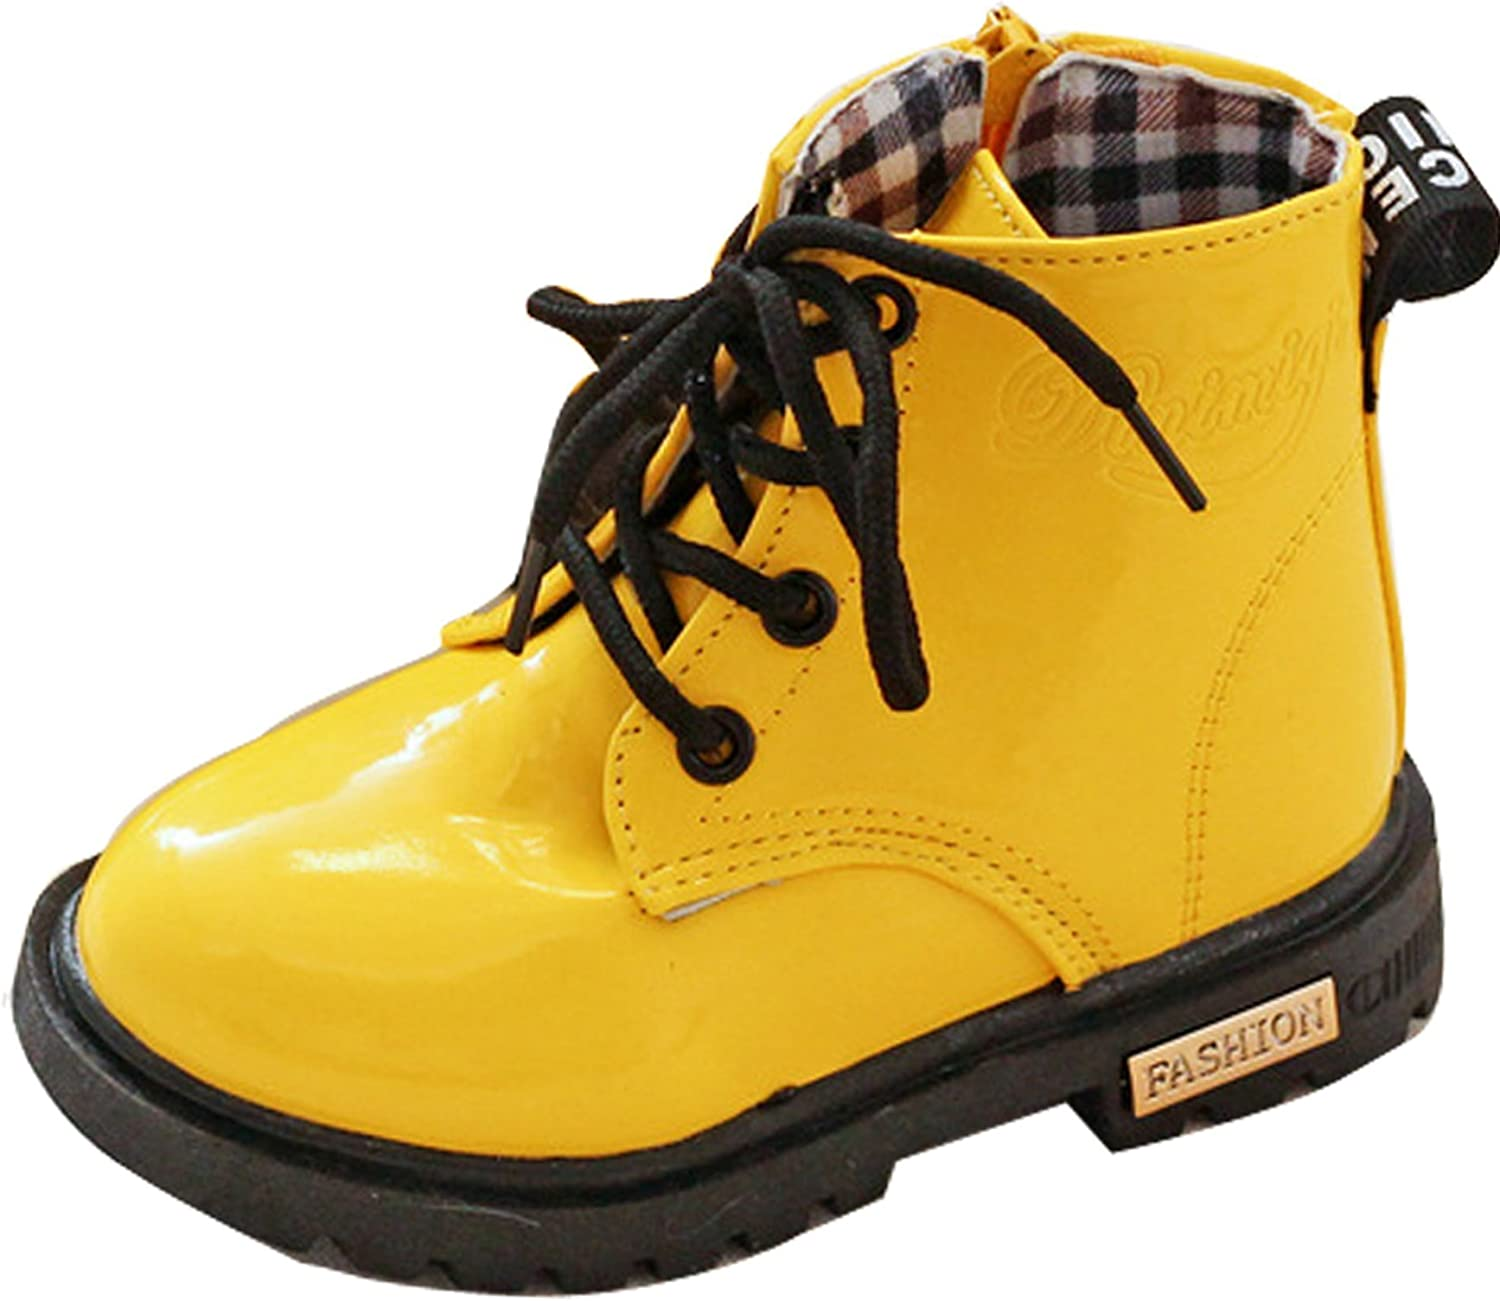 Kids Boys Girls Ankle Boots Popular popular - Lace Up Zip Children Shipping included Waterproof Pu